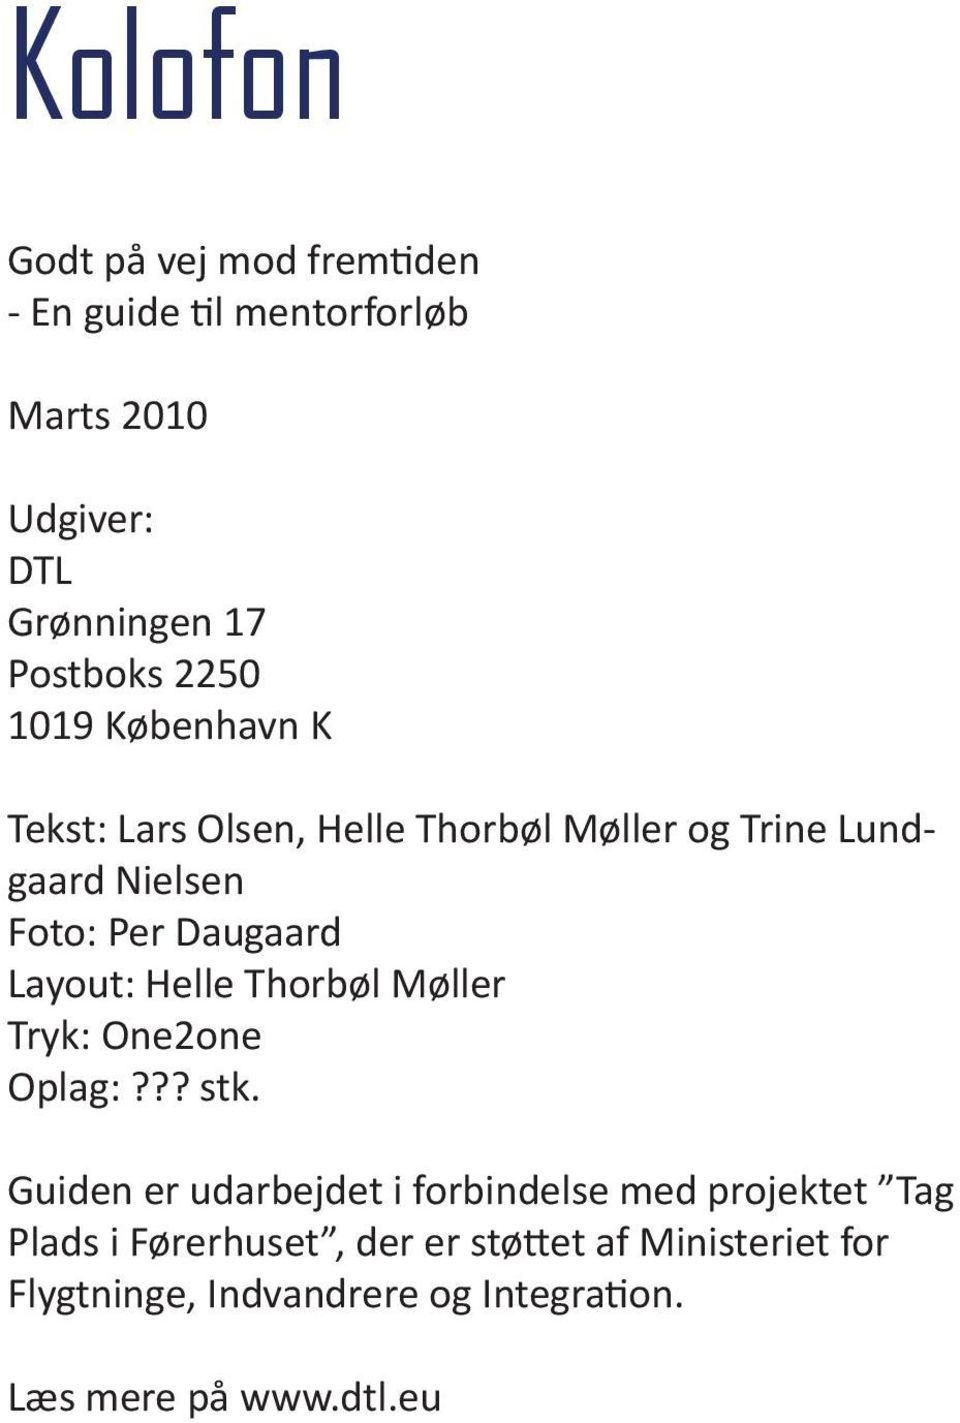 Layout: Helle Thorbøl Møller Tryk: One2one Oplag:??? stk.